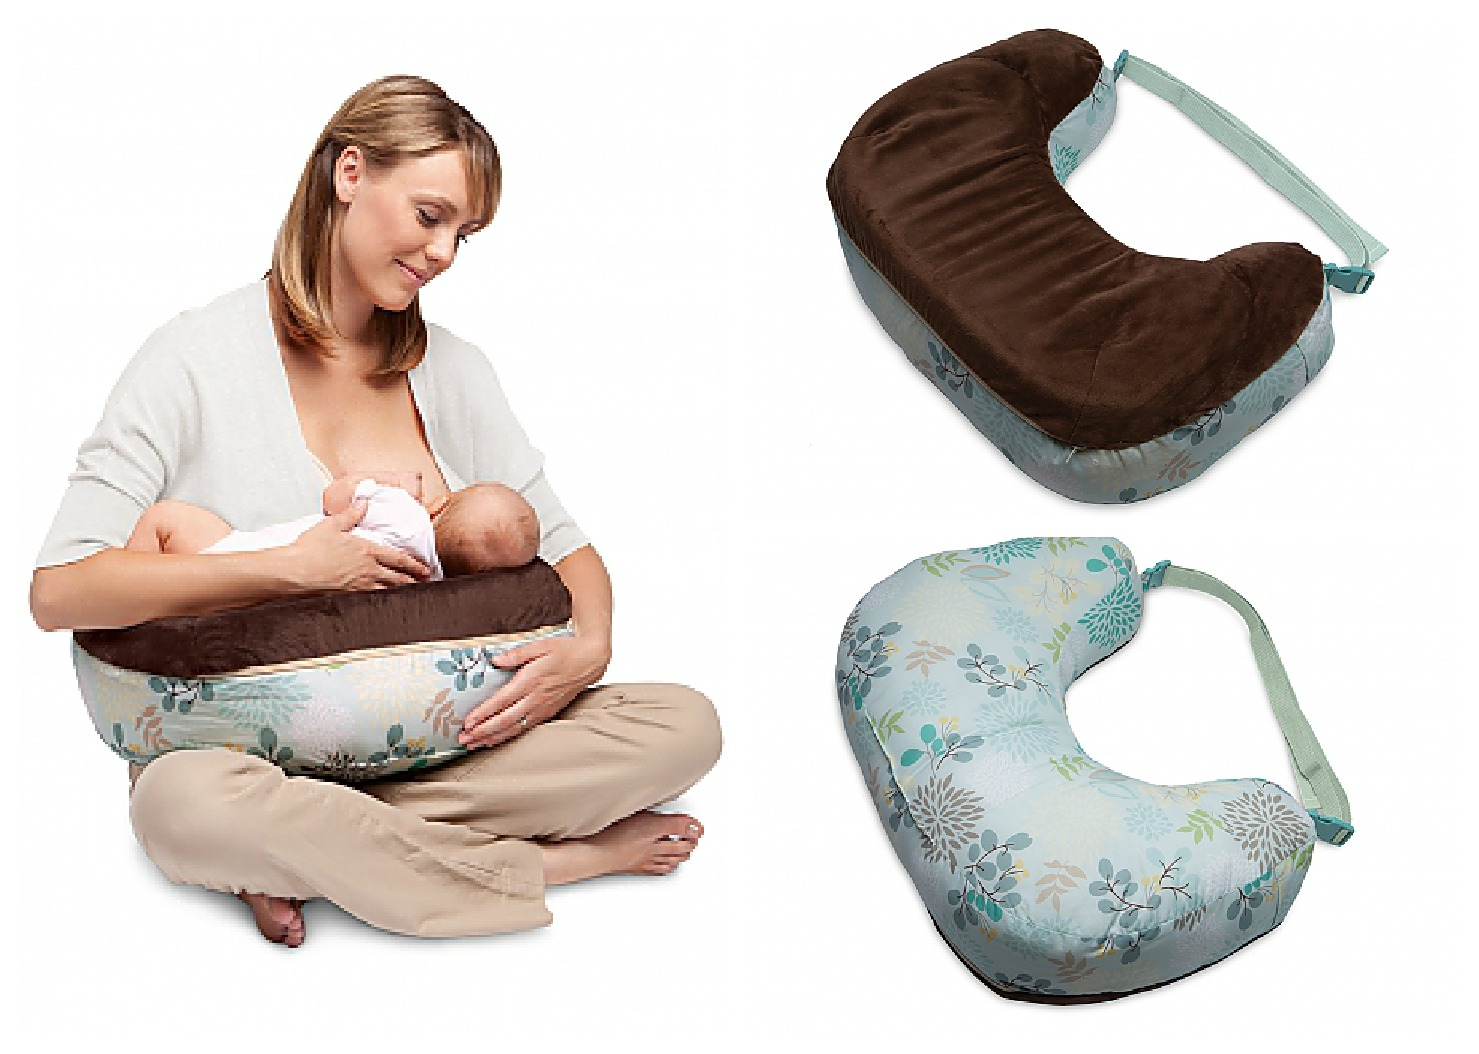 The Boppy Nursing Pillow Was Designed By A Lactation Consultant Just For  Nursing. It Has Two Sides For Successful Support. One Side Is Contoured  Foam That ...